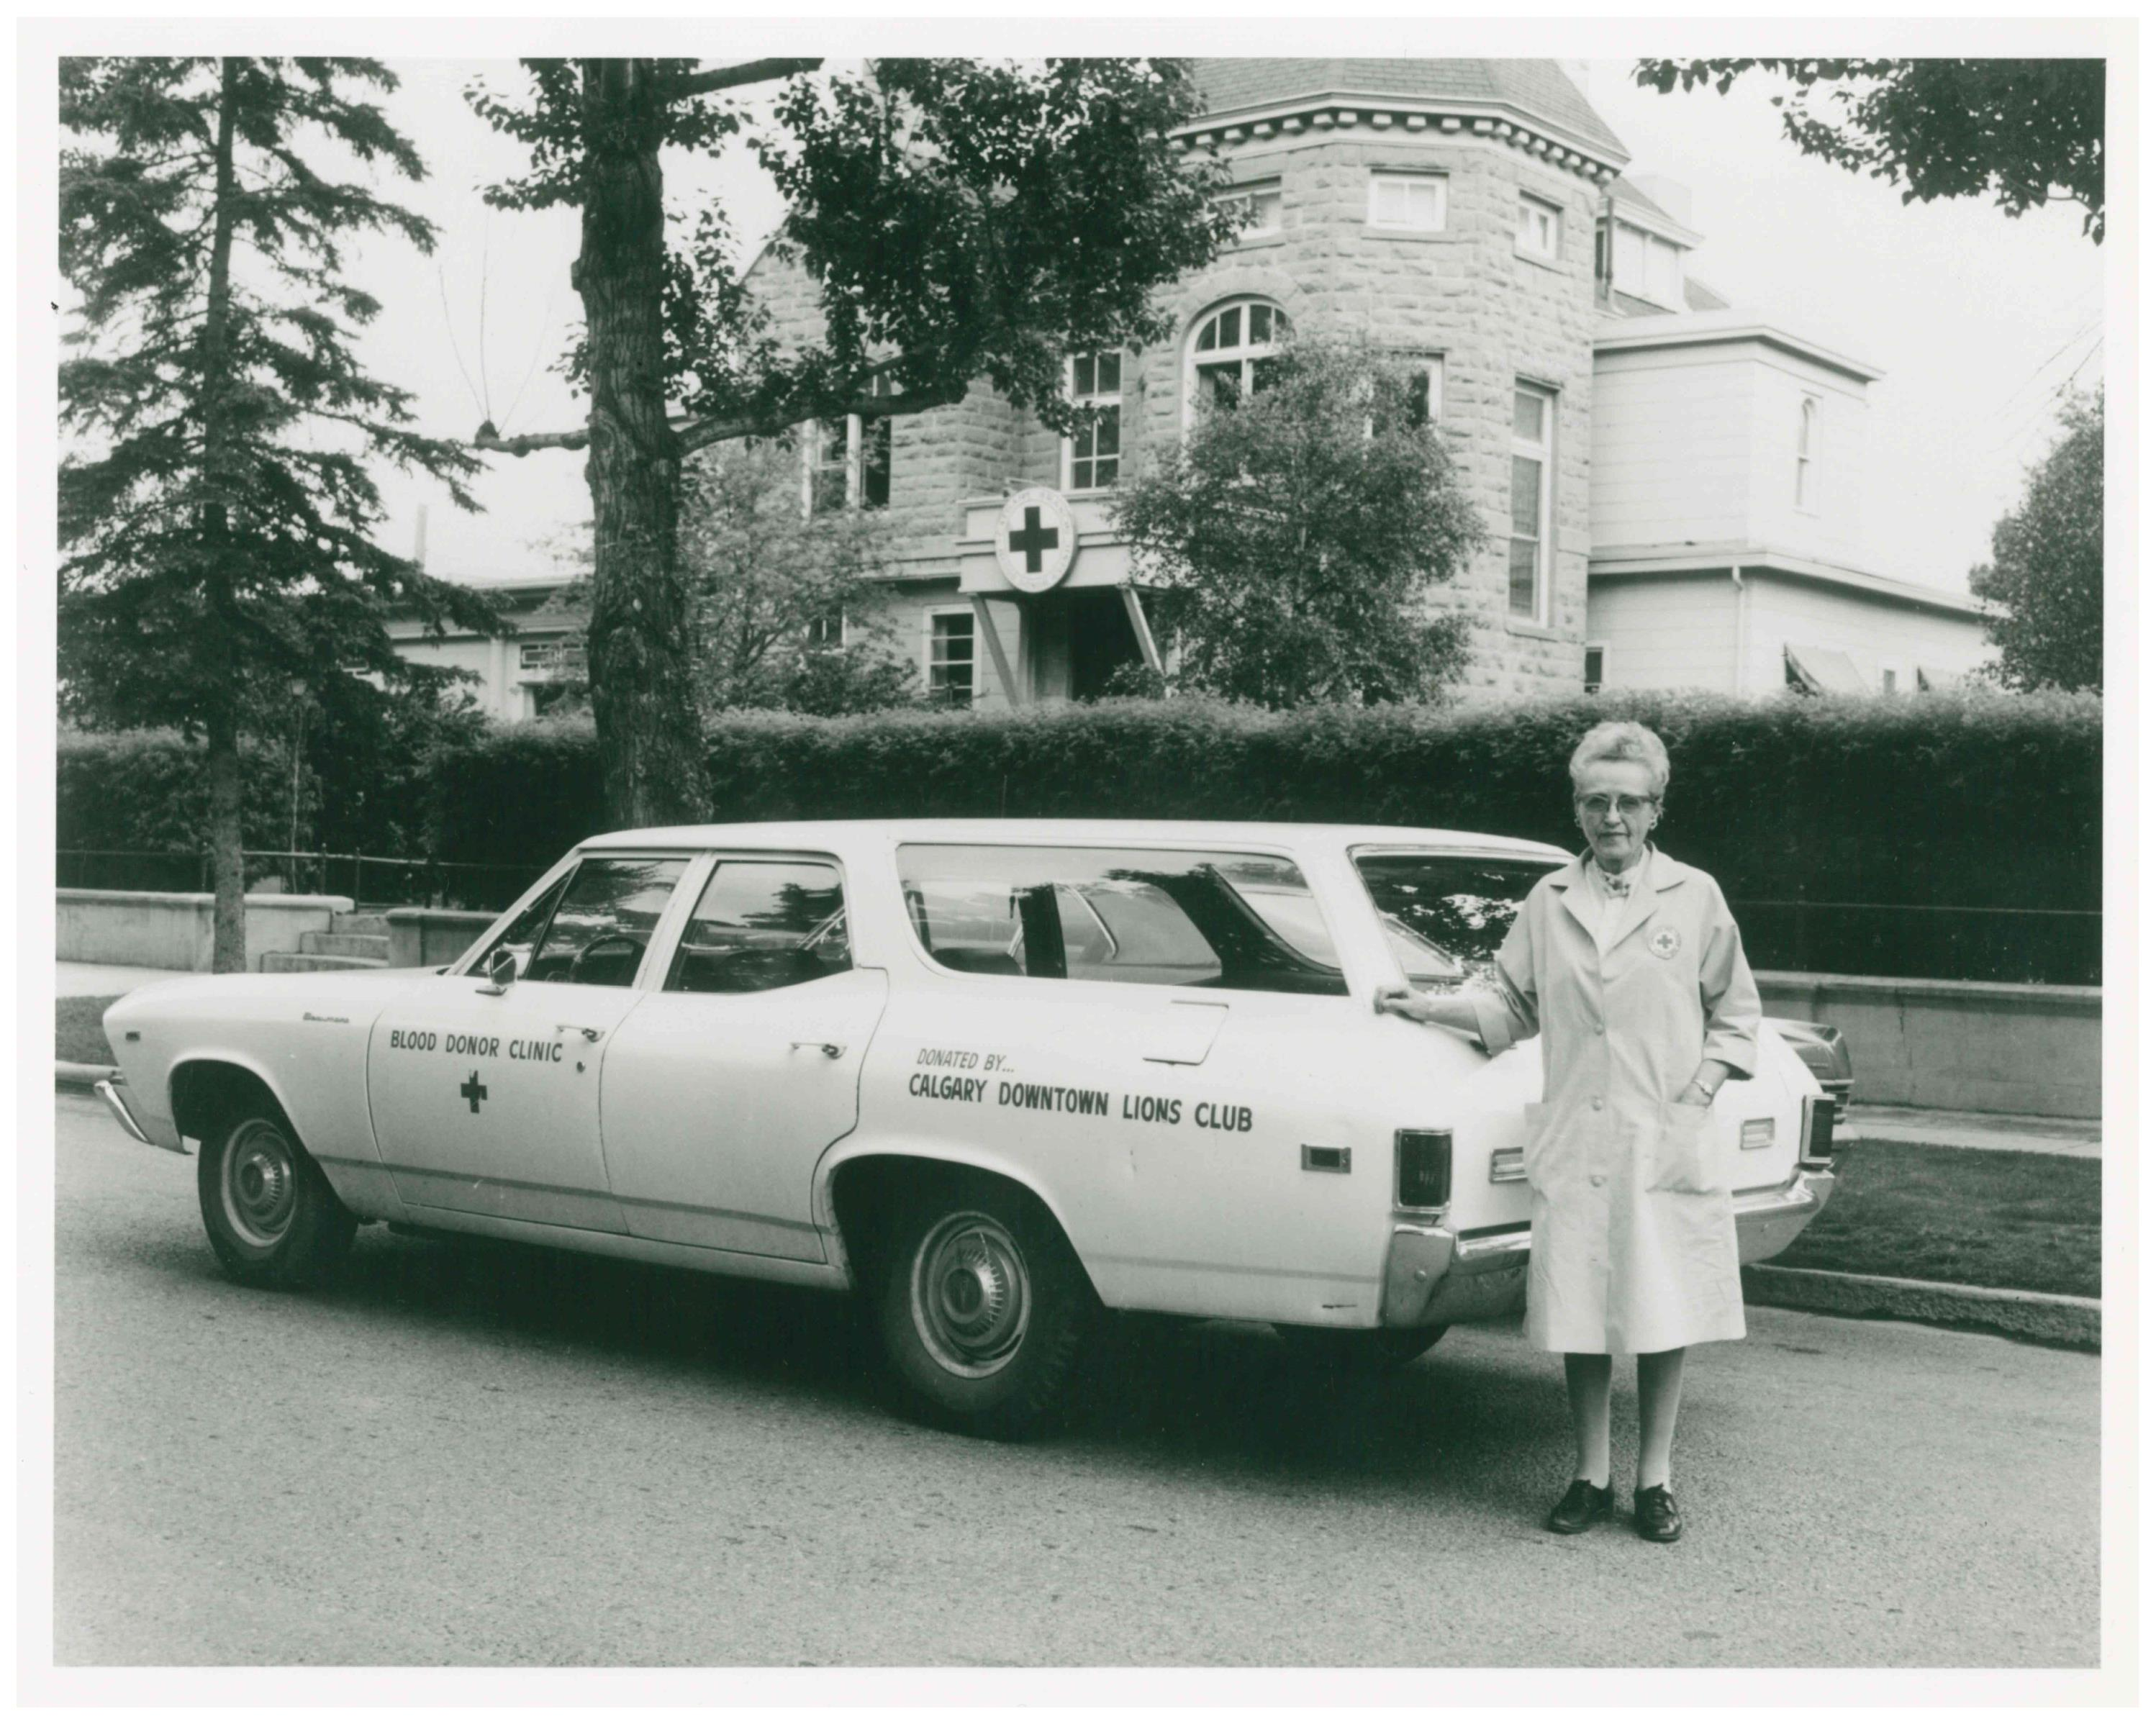 Mrs. T.L. O'Keefe in front of Blood donor clinic, Calgary